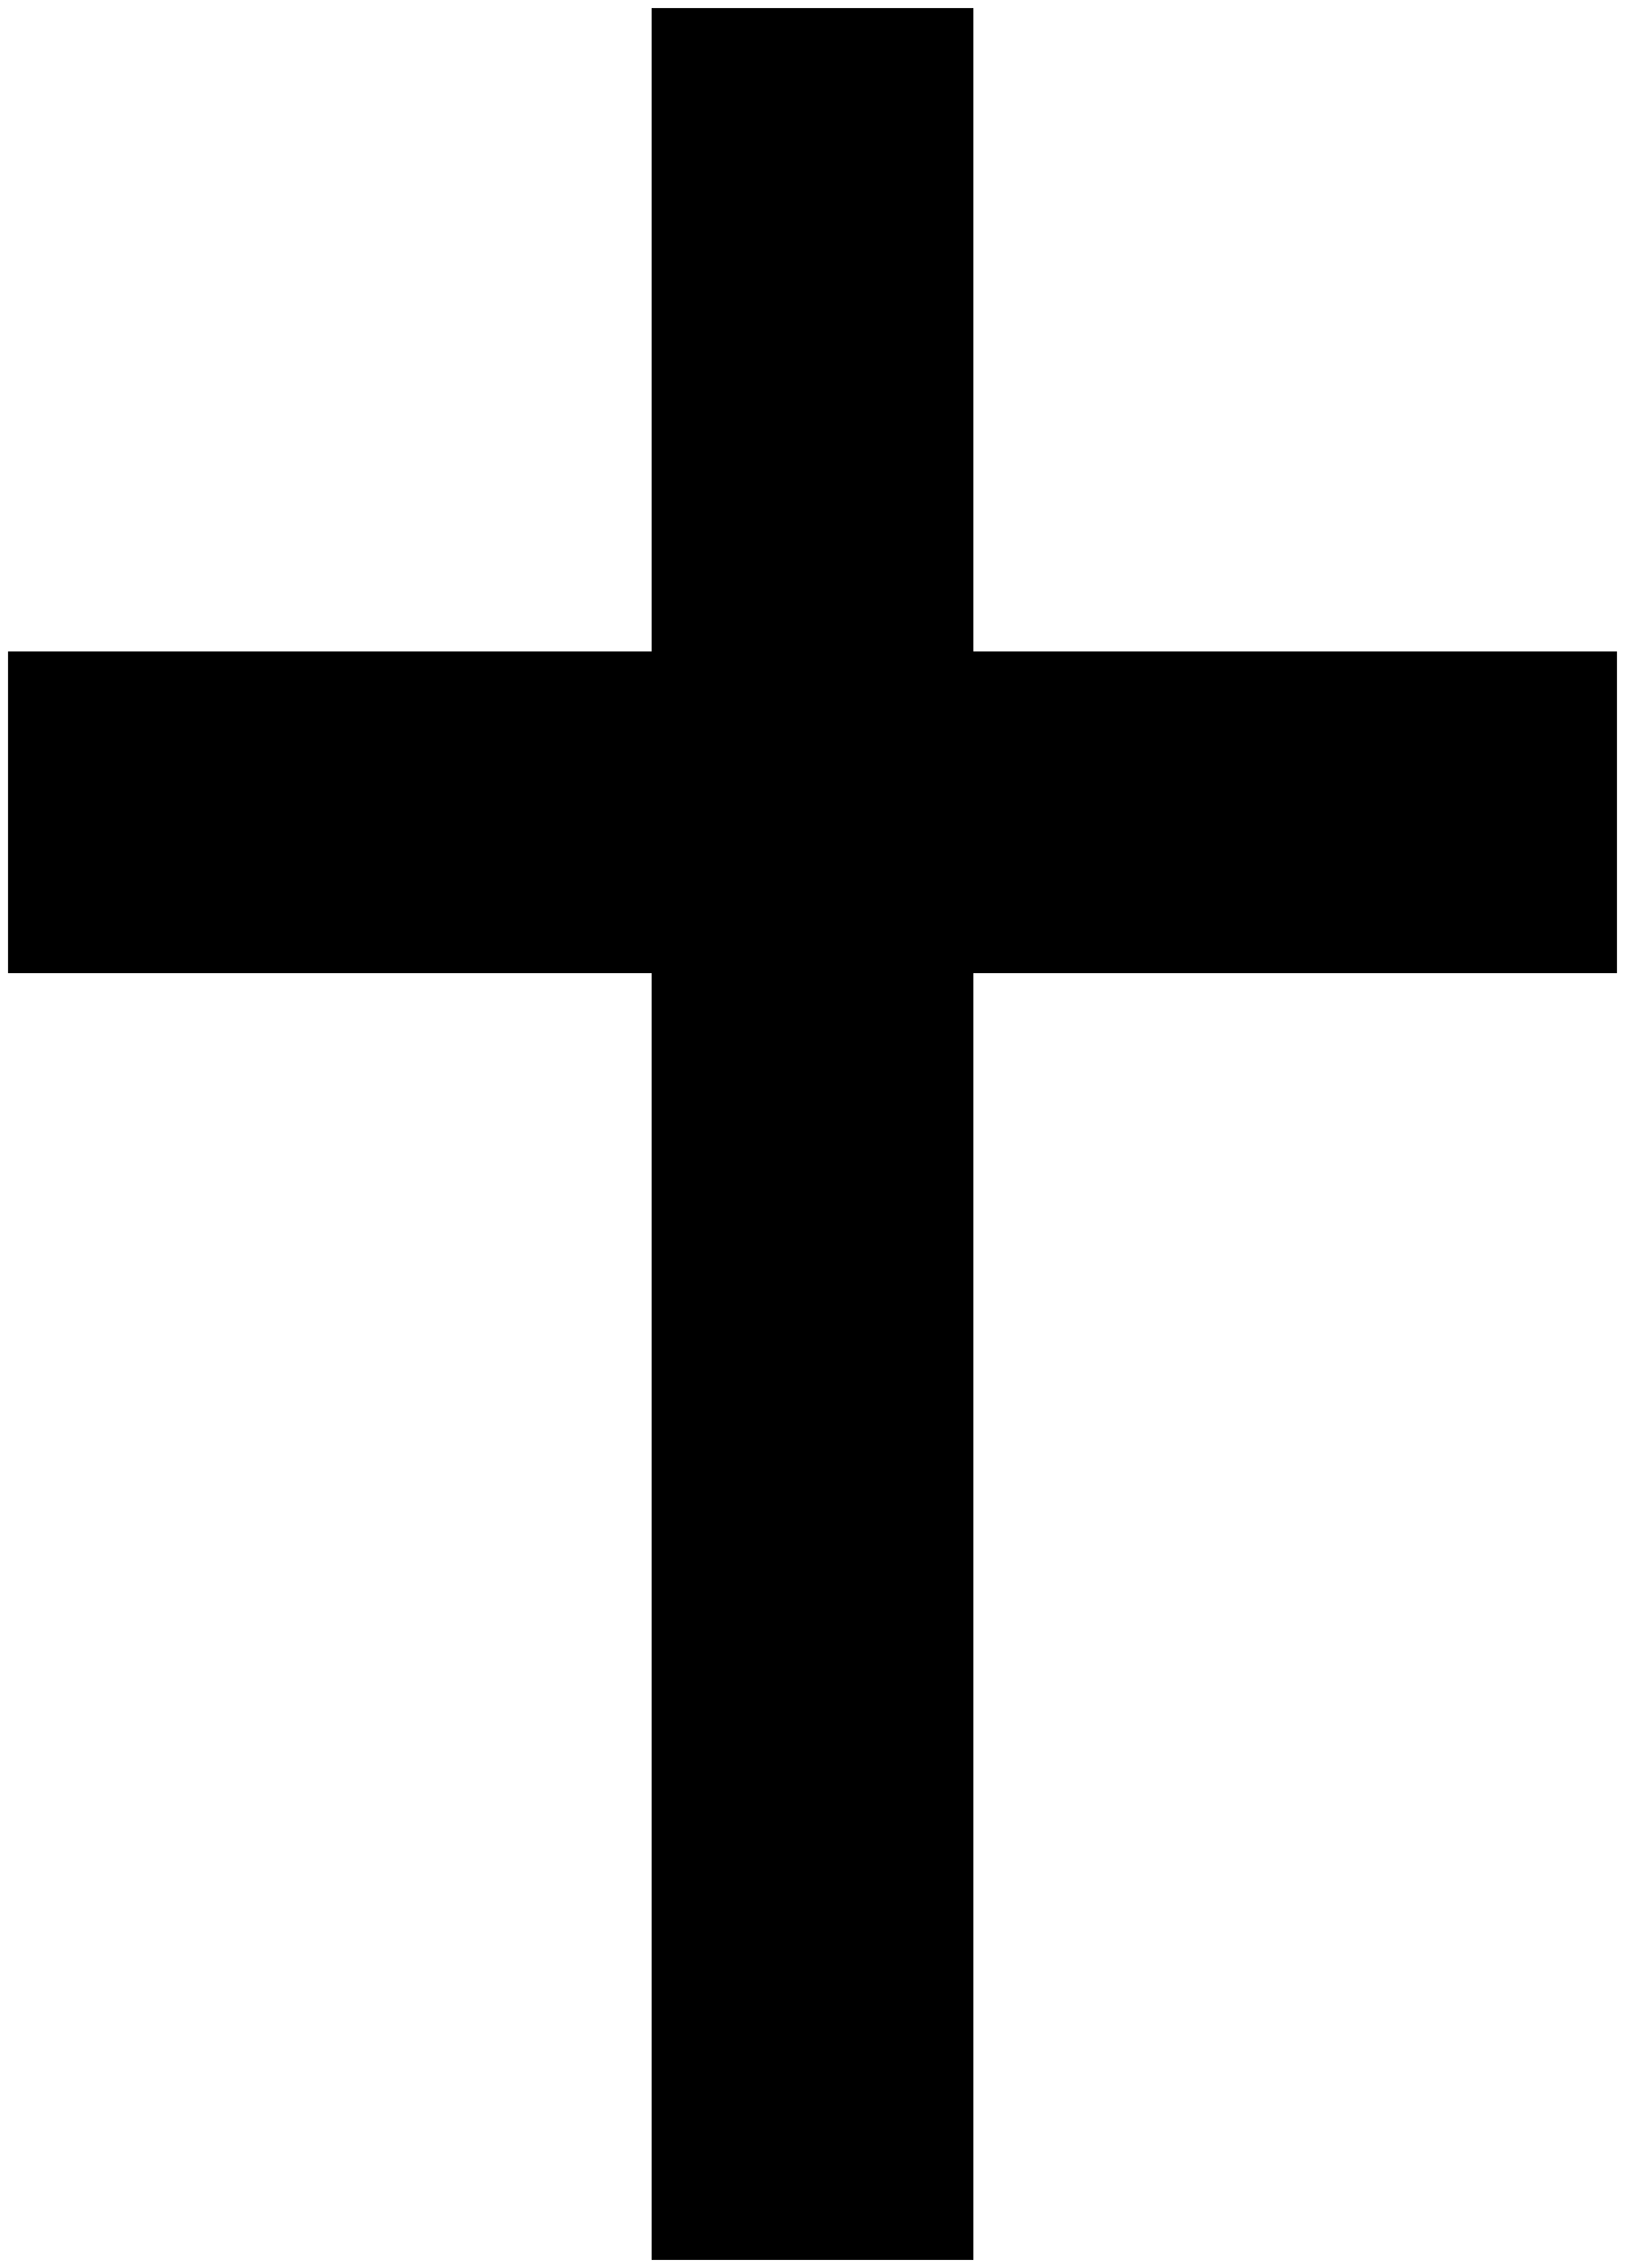 Christianity cross clipart banner free stock Simple Christian Cross Clipart transparent PNG - StickPNG banner free stock